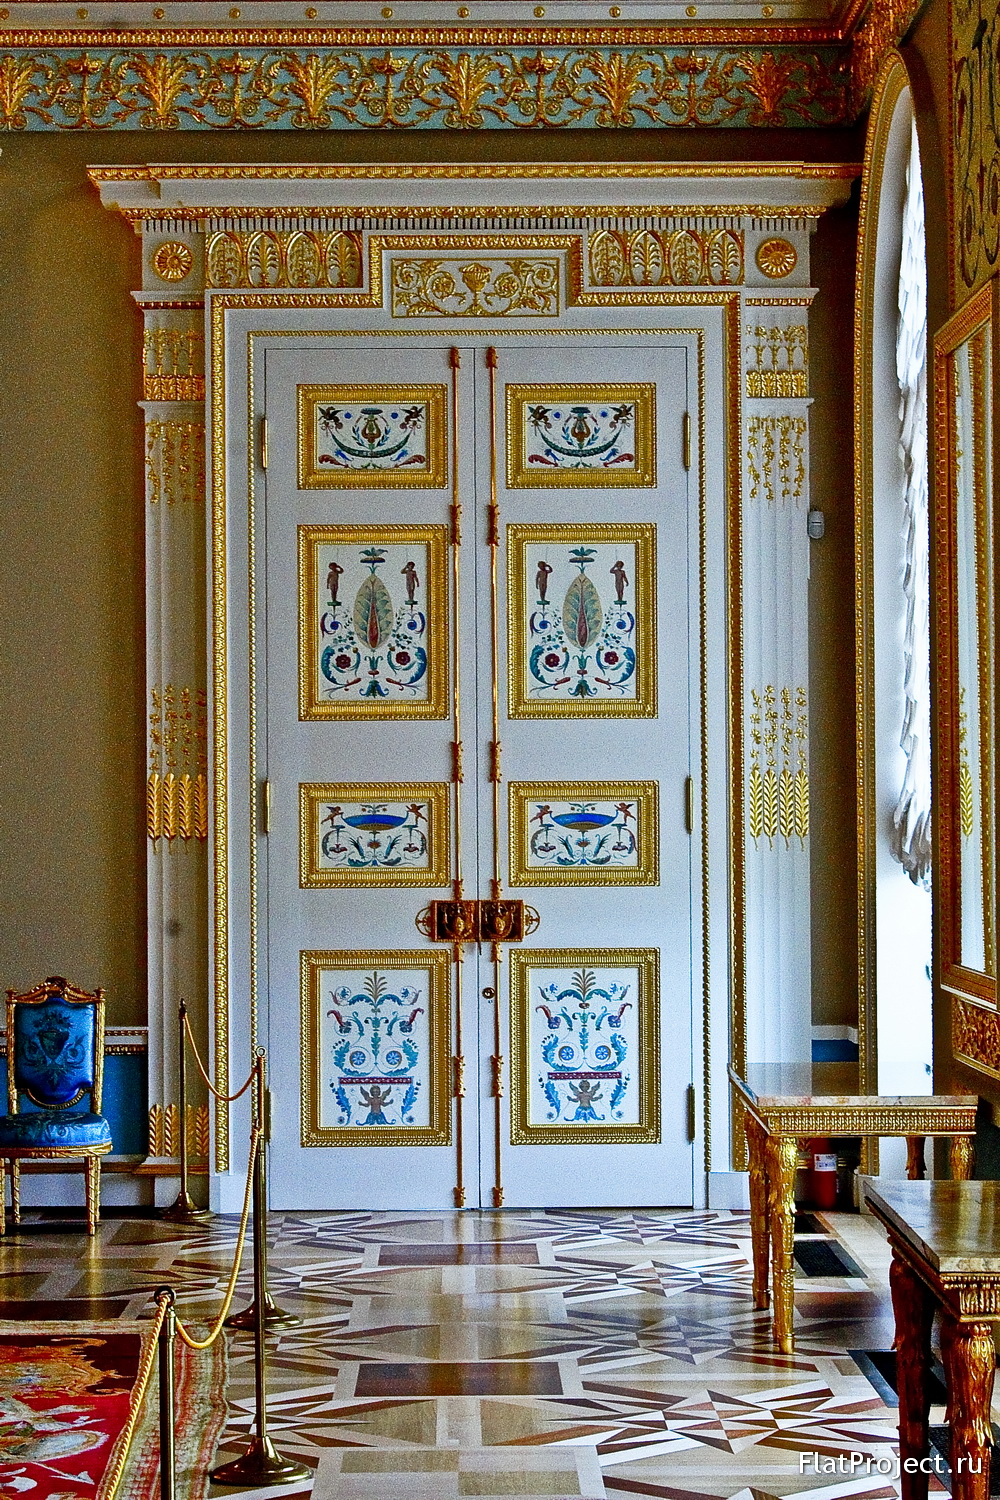 The Catherine Palace interiors – photo 212